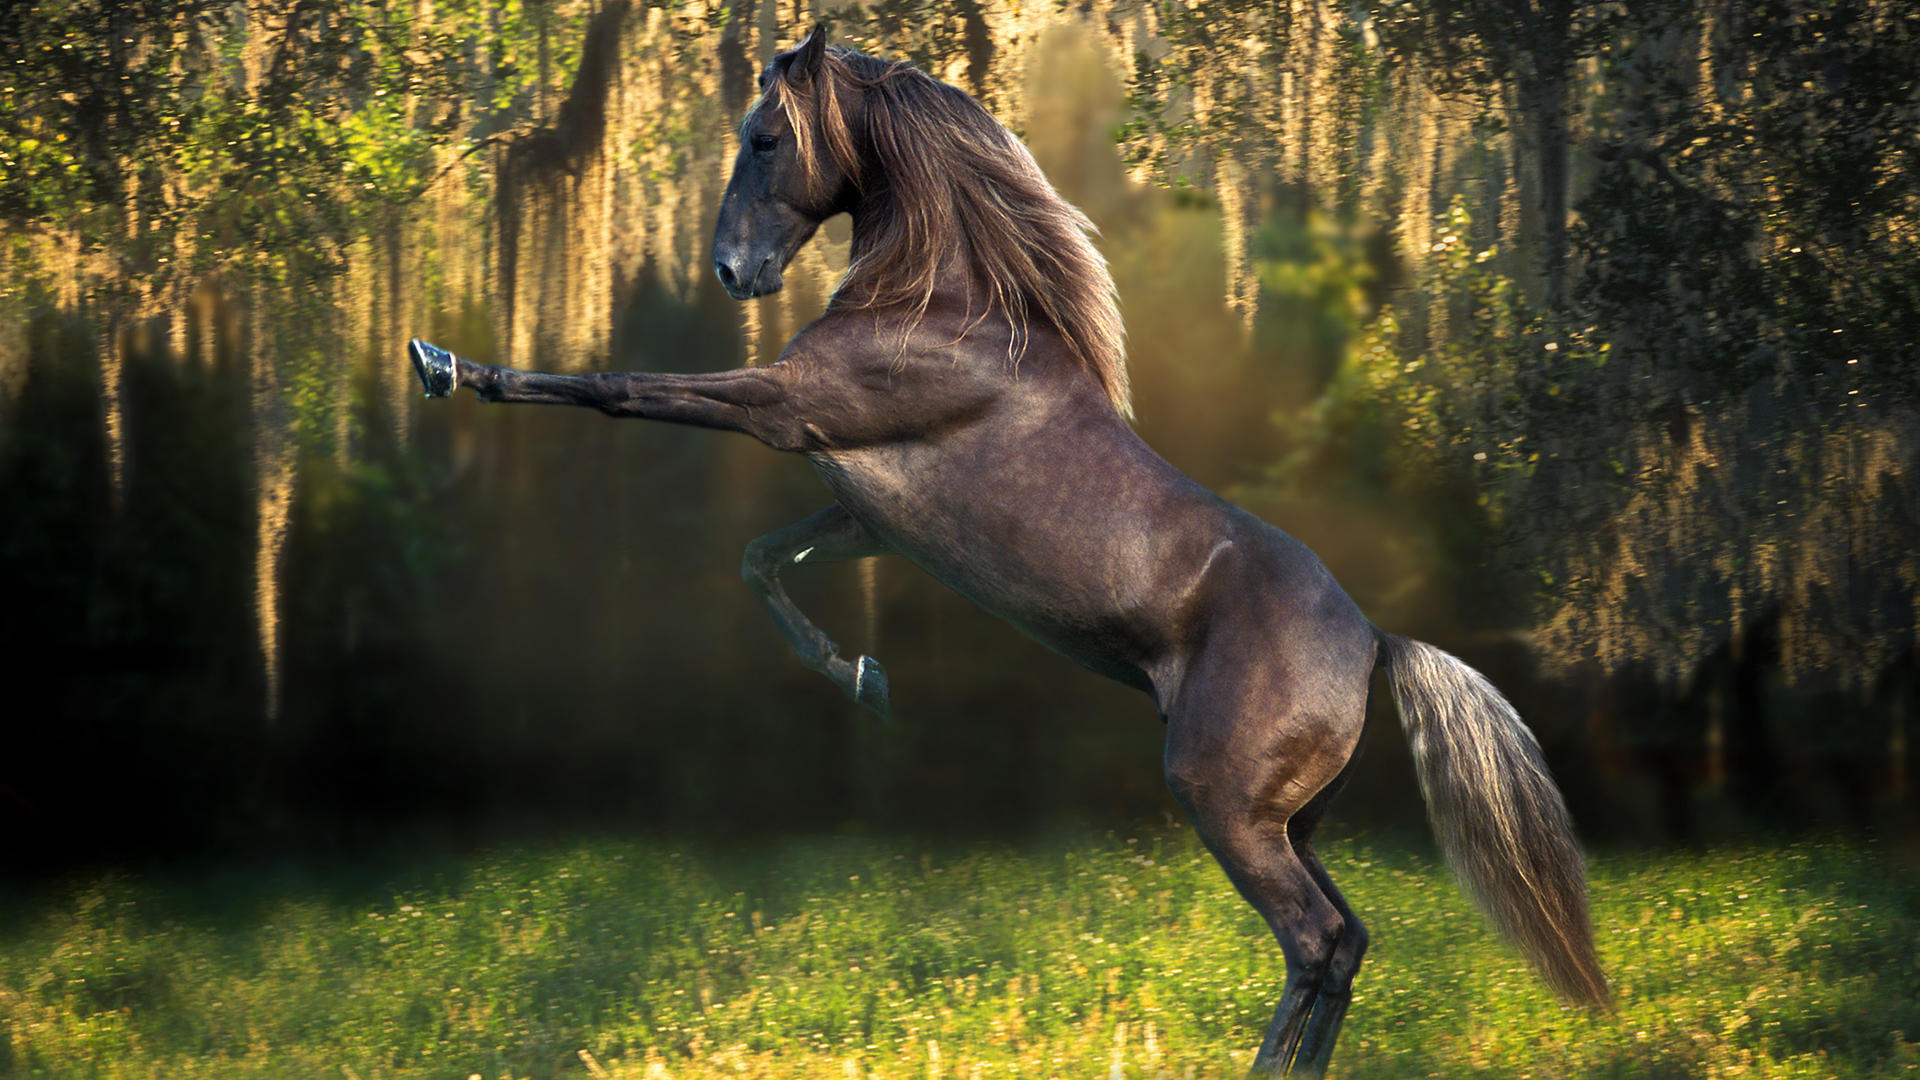 Wallpaper horse pictures pic wpc002518 wallpaper download voltagebd Images